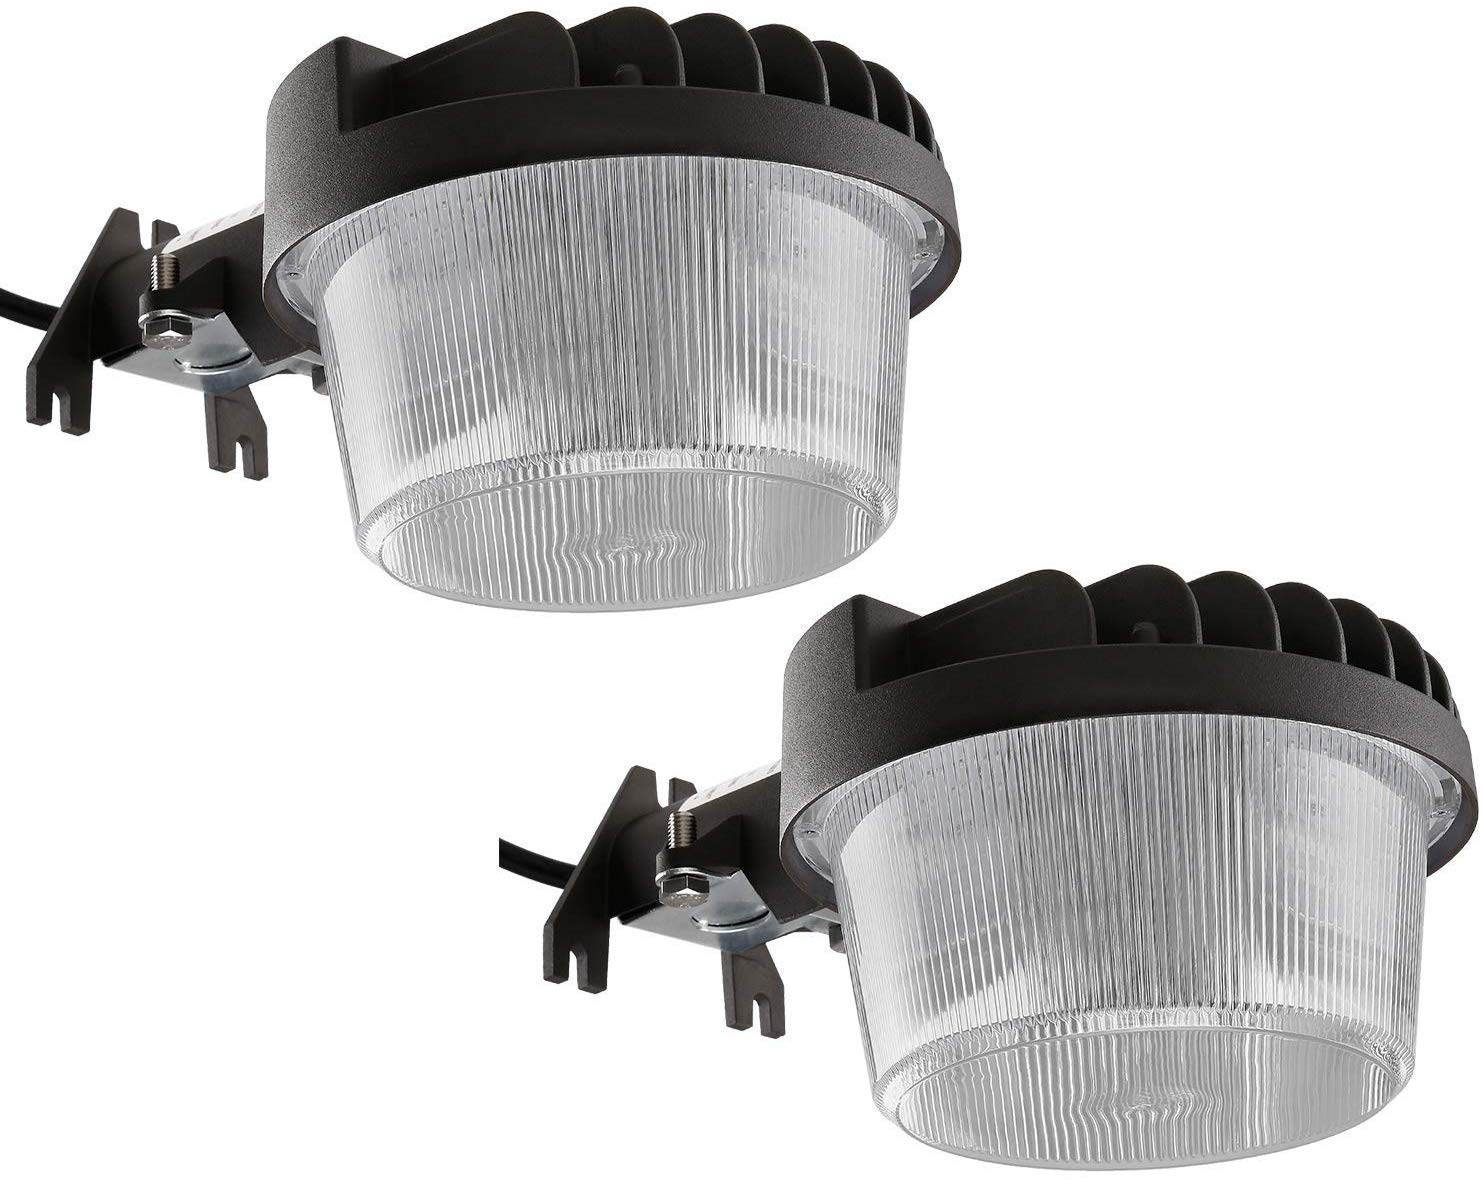 TORCHSTAR LED Outdoor Barn Light Dusk-to-Dawn Security Area Lights with Photocell, Wet Location Yard Floodlight Fixture, 5000K Daylight, 100-277V, ETL-Listed, 5-Year Warranty, Pack of 2